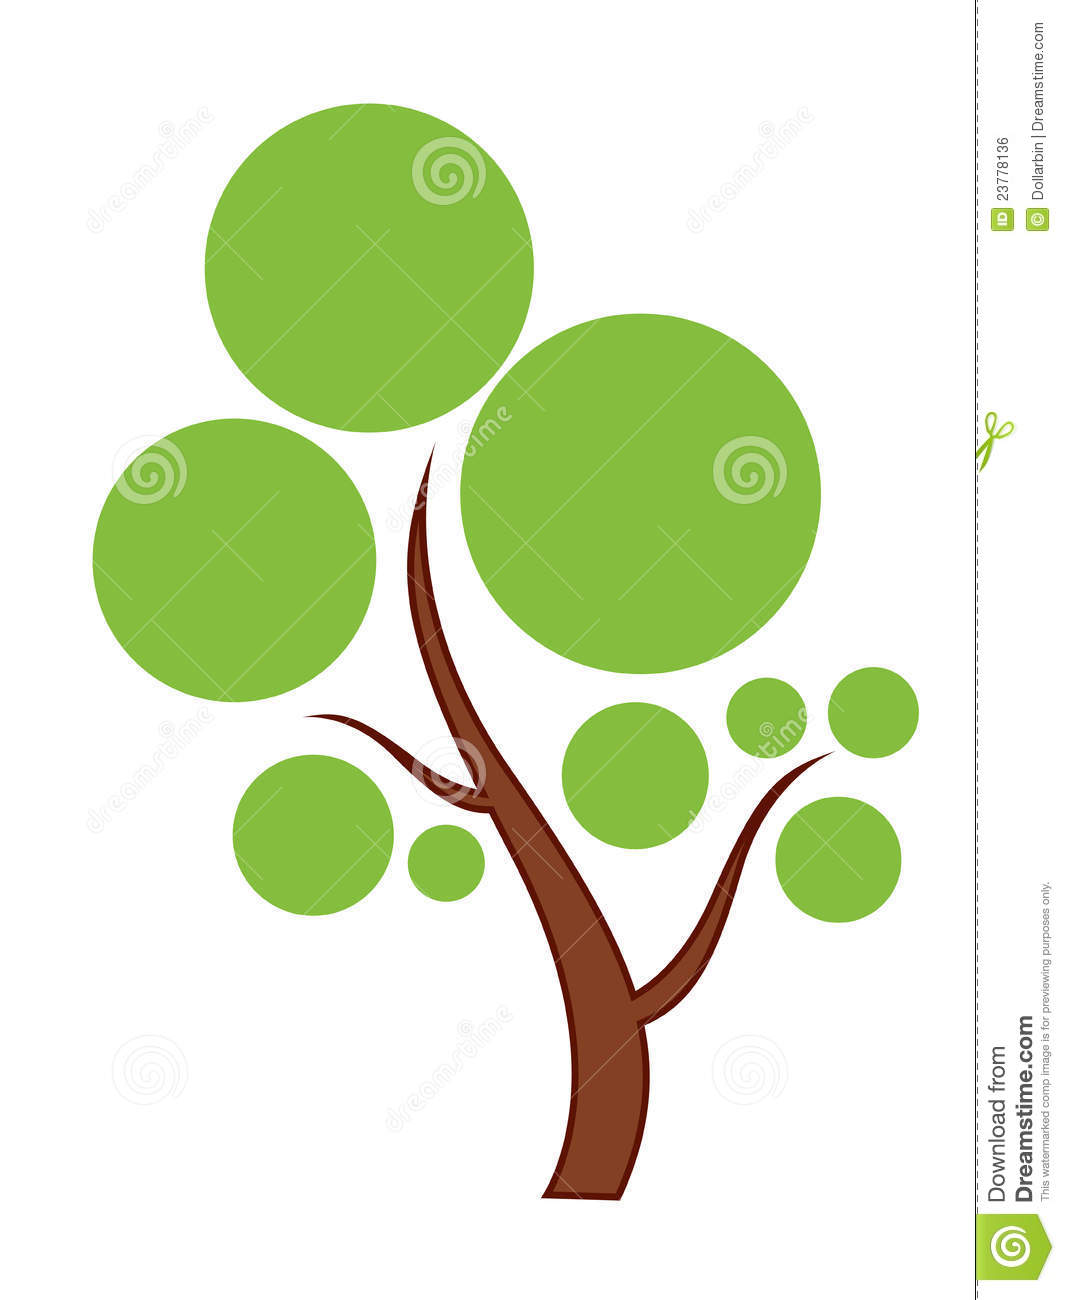 Green Tree Icon Royalty Free Stock Image   Image: 23778136 image #1530